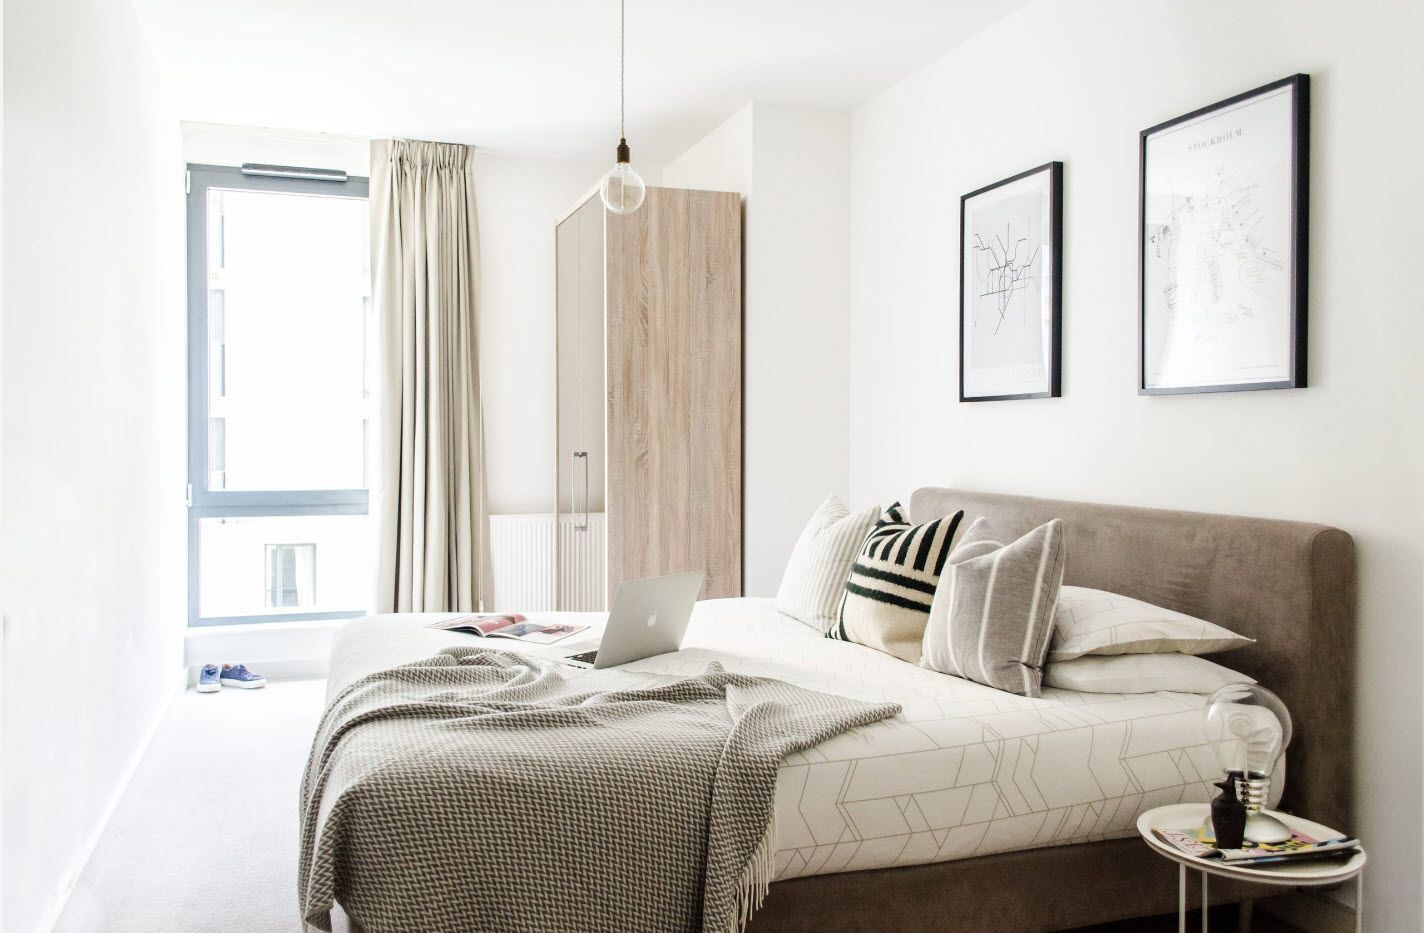 Large pictures and wooden surfaces of the modern bedroom 2017